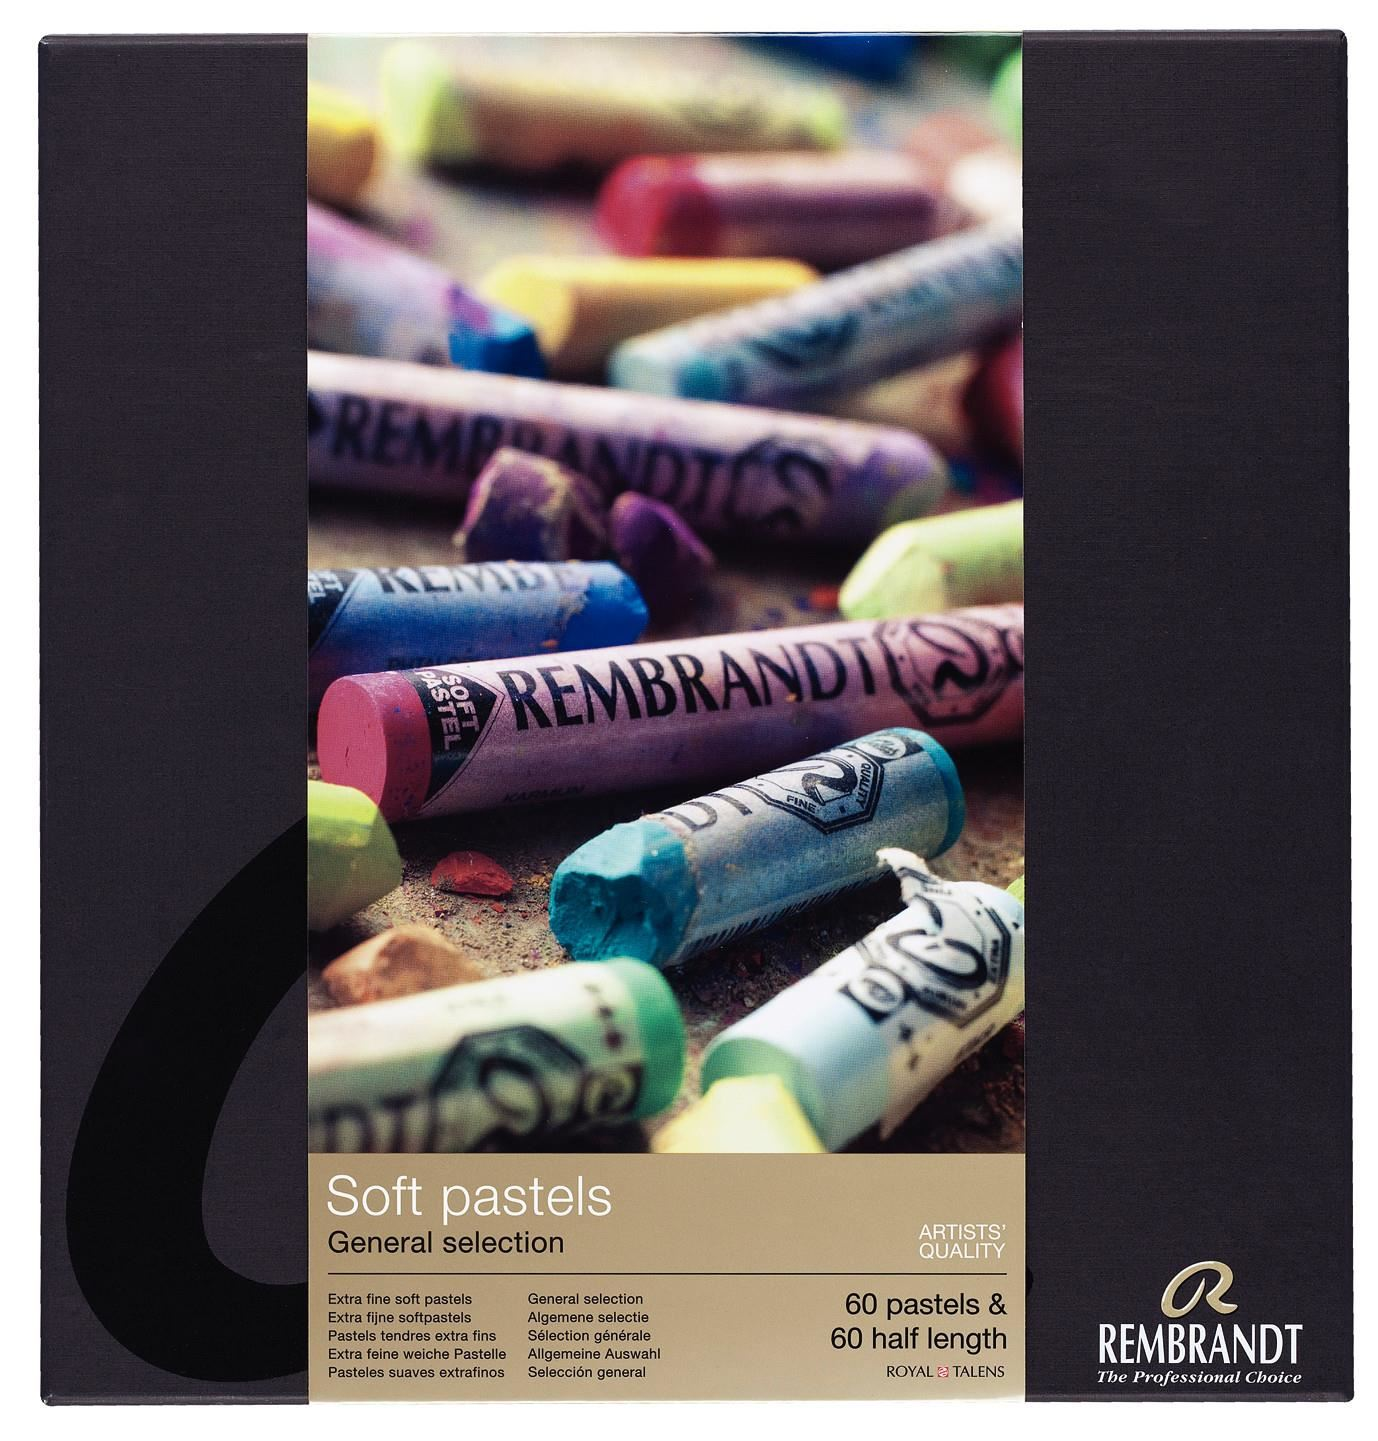 Royal Talens Rembrandt Extra Fine Soft Pastel Artist Quality General Selection of 45